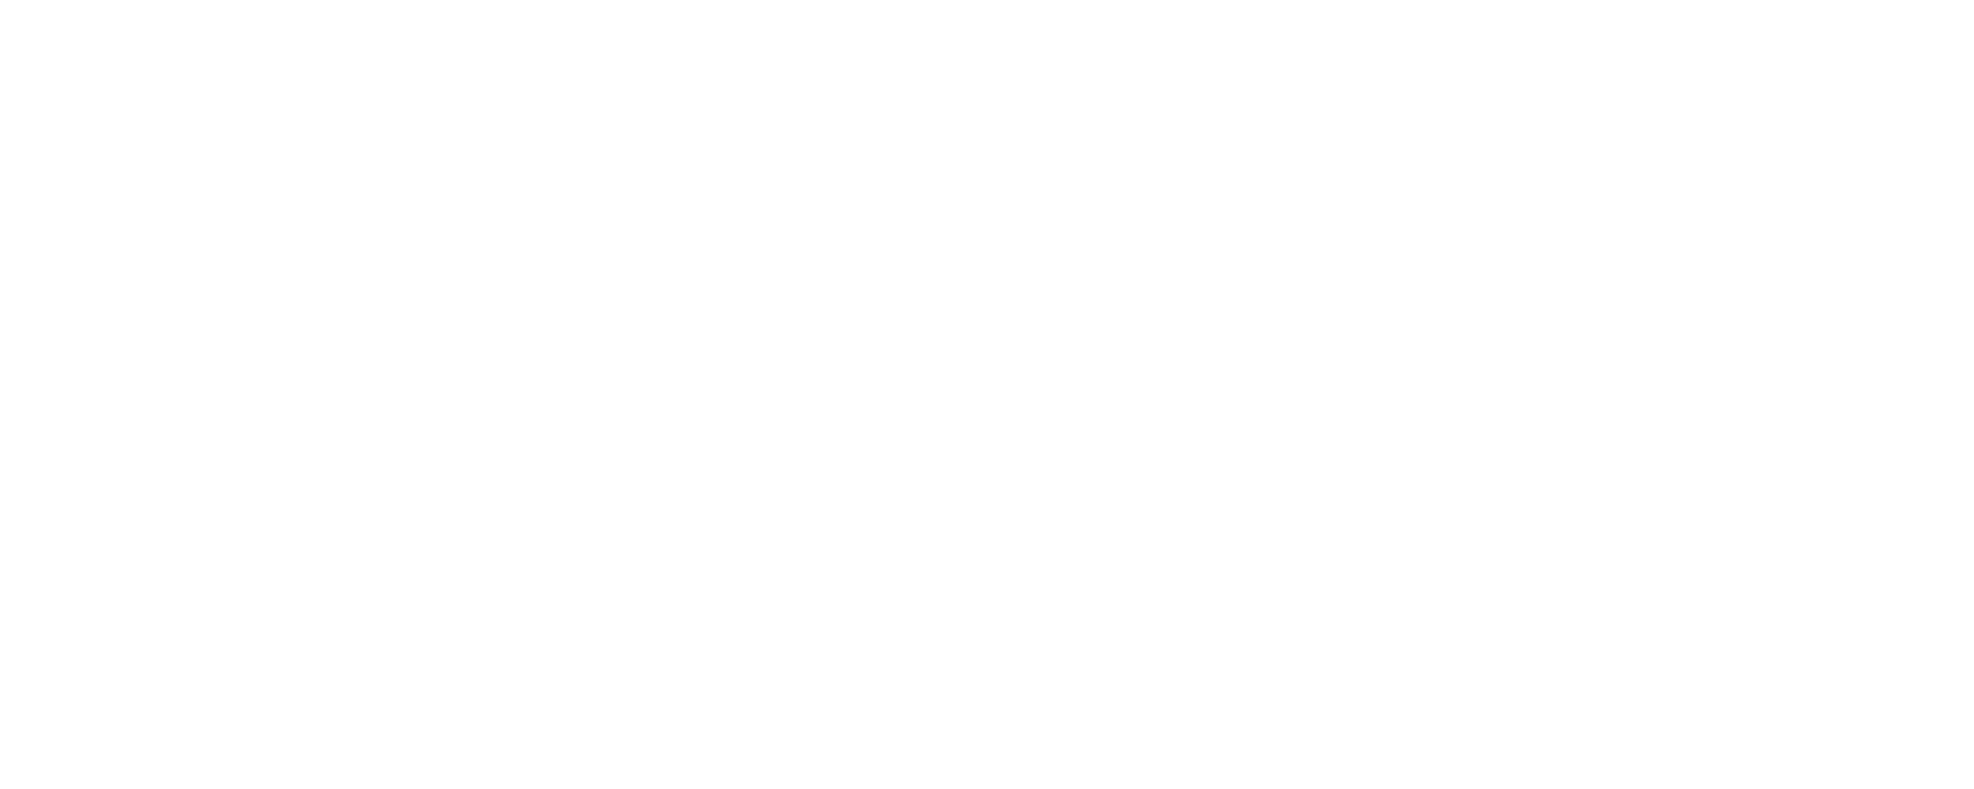 Spoke & Dagger Co.